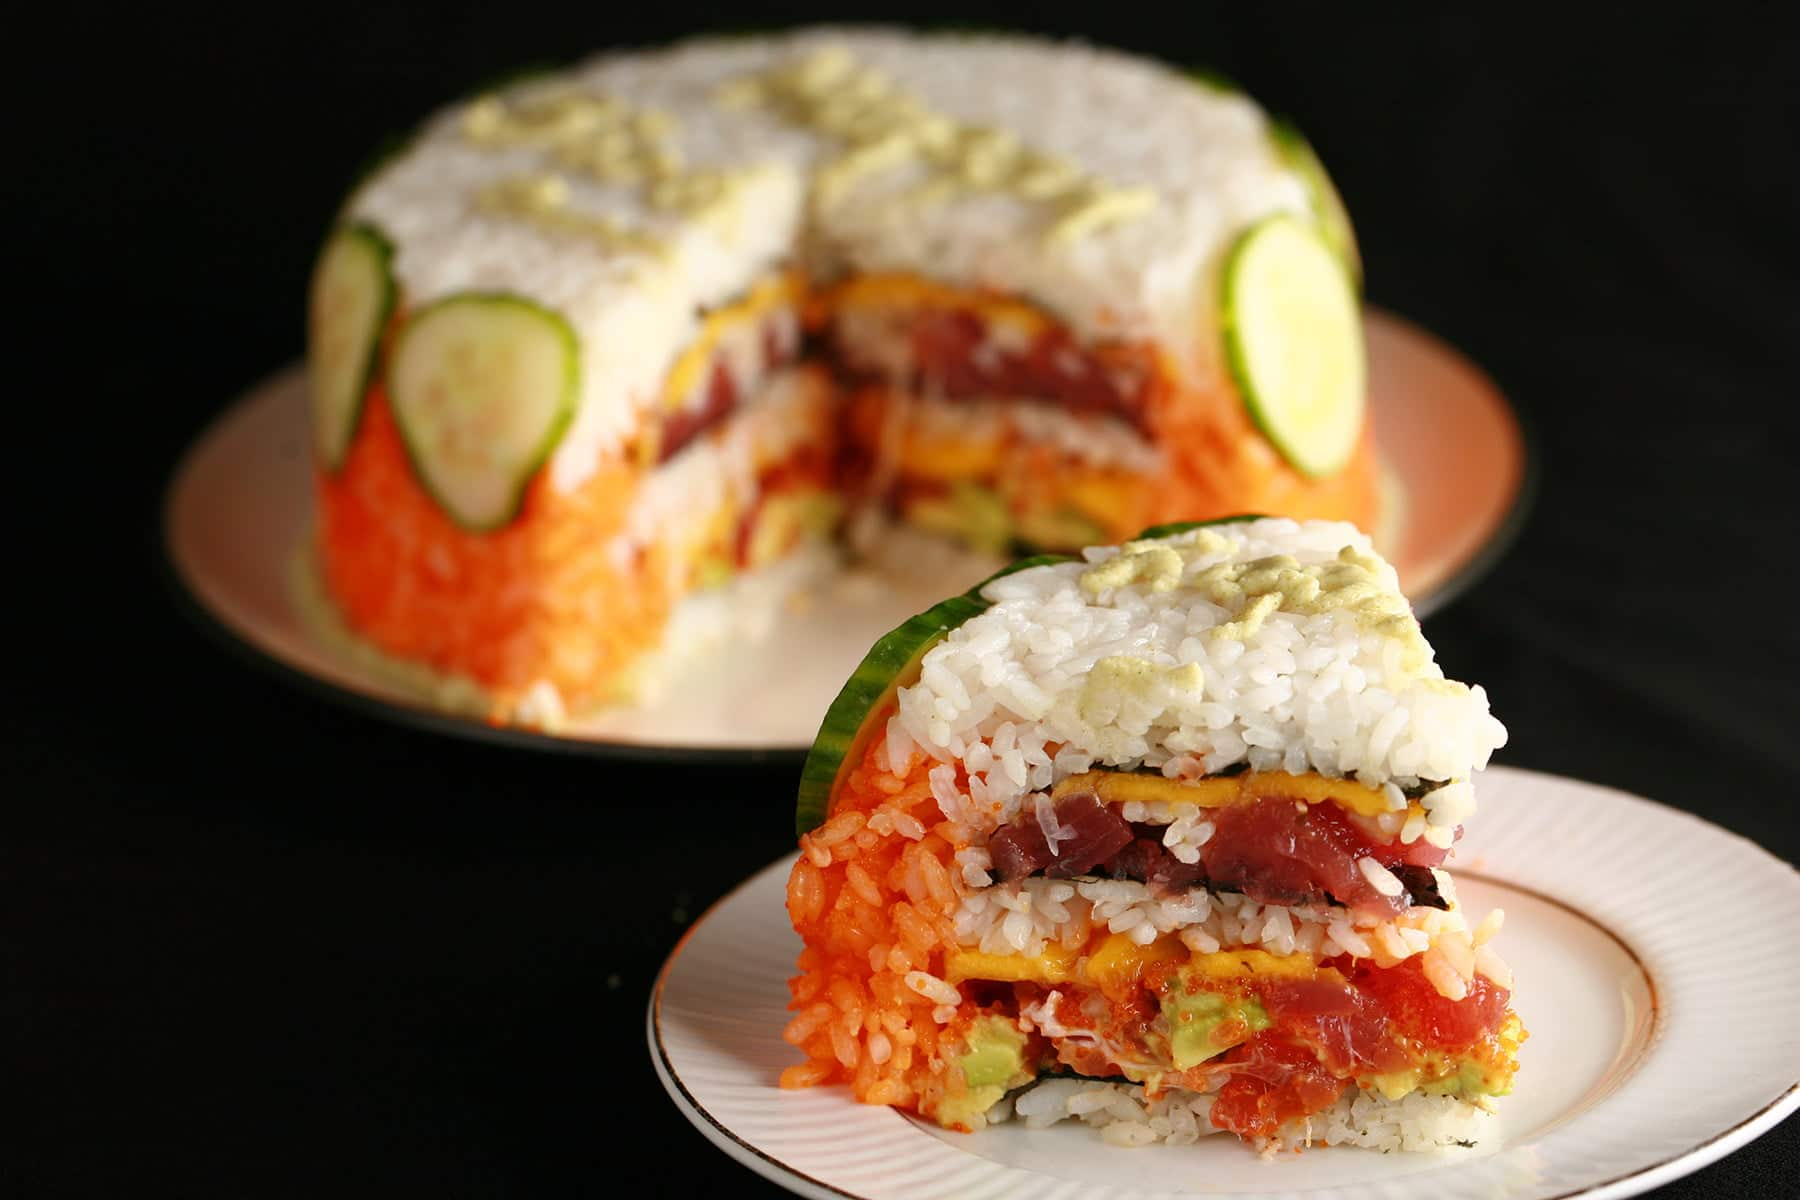 A small sushi cake. Layers of rice and fish in the form of a birthday cake.